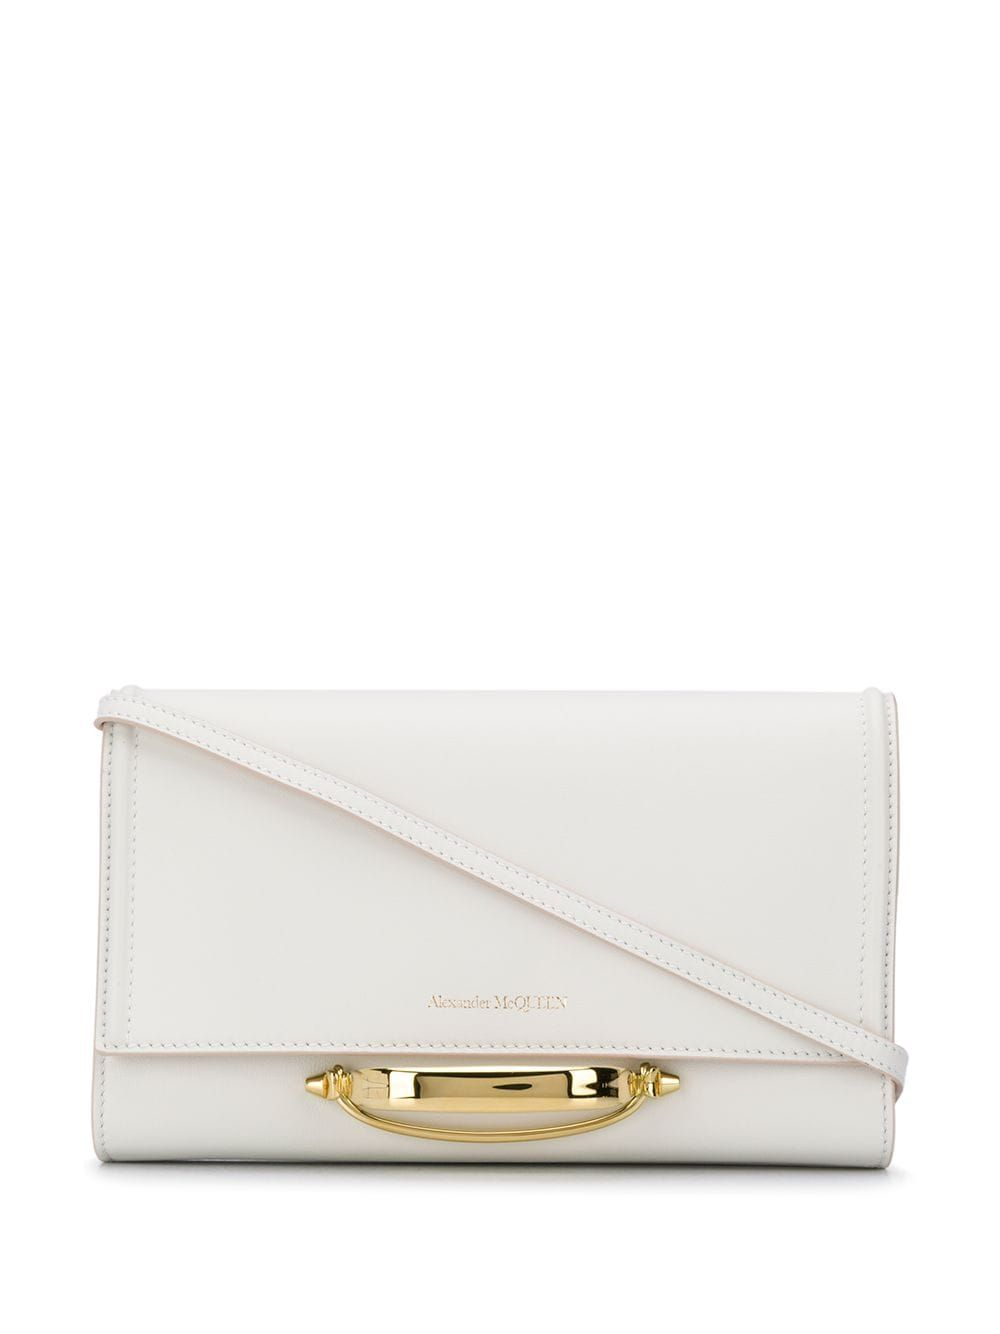 ALEXANDER MCQUEEN small The Story crossbody bag